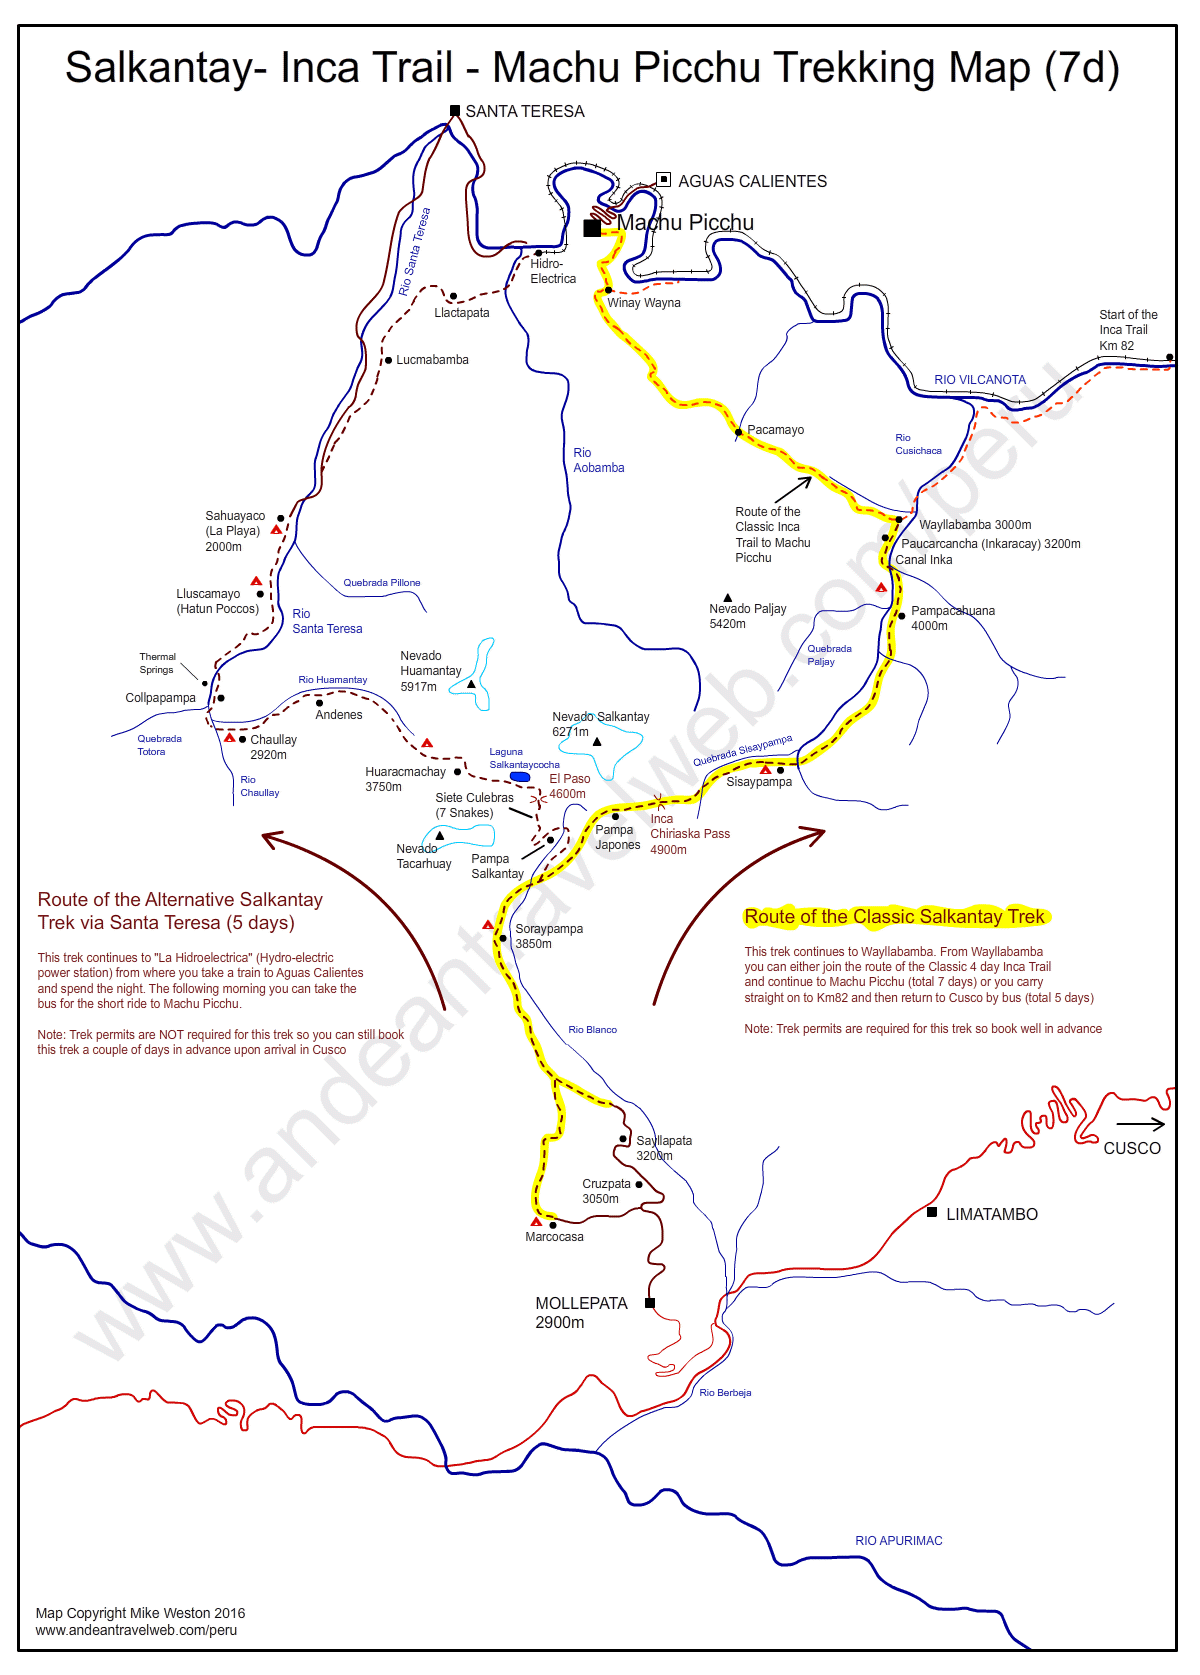 Map of the 7 day Salkantay / Inca Trail to Machu Picchu trek